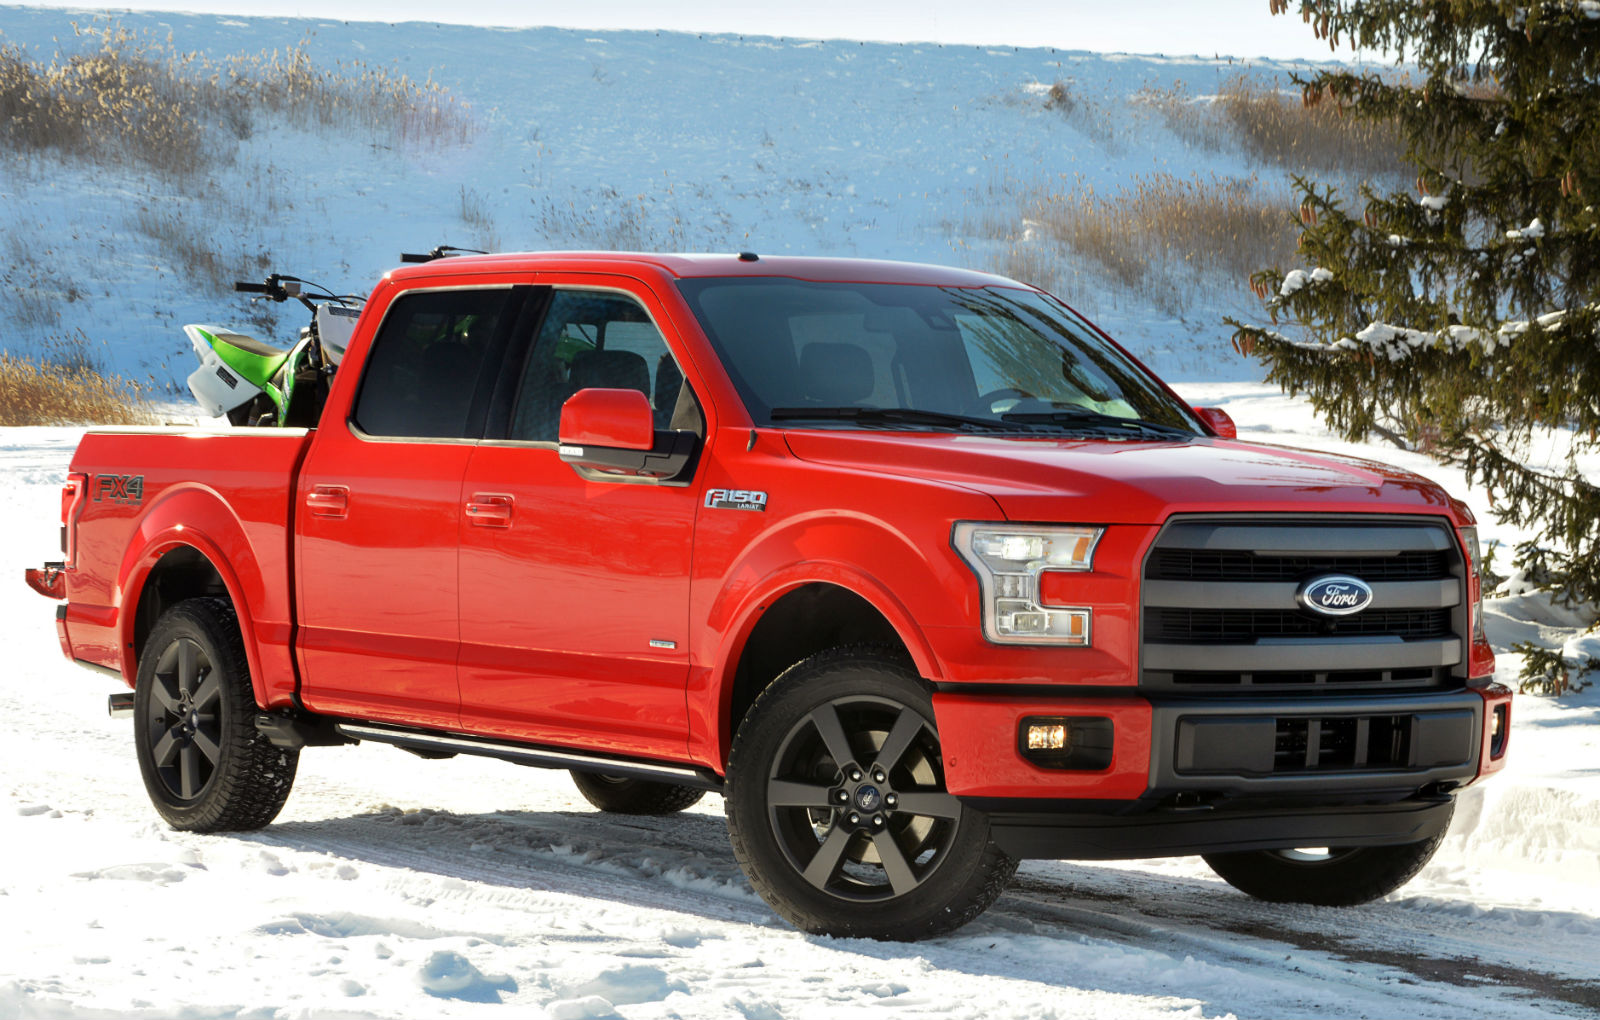 2015 Ford F 150 Red Pickup Truck Wallpaper   HD 1600x1020